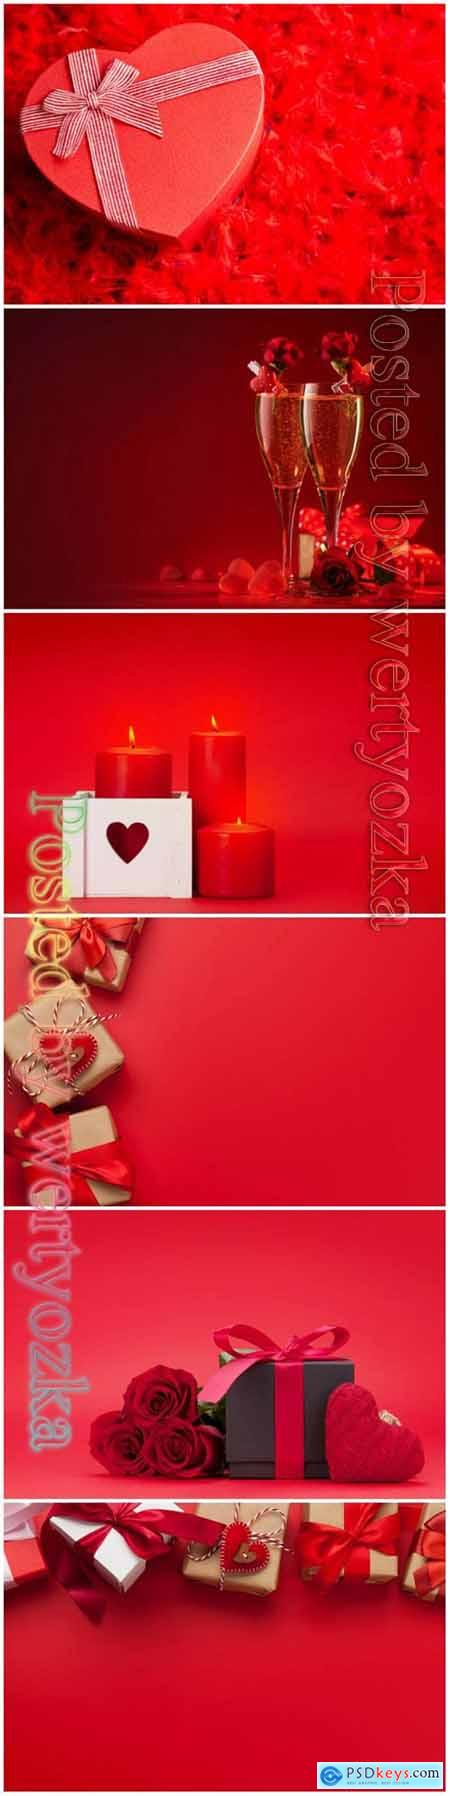 Valentines day beautiful stock photo # 3